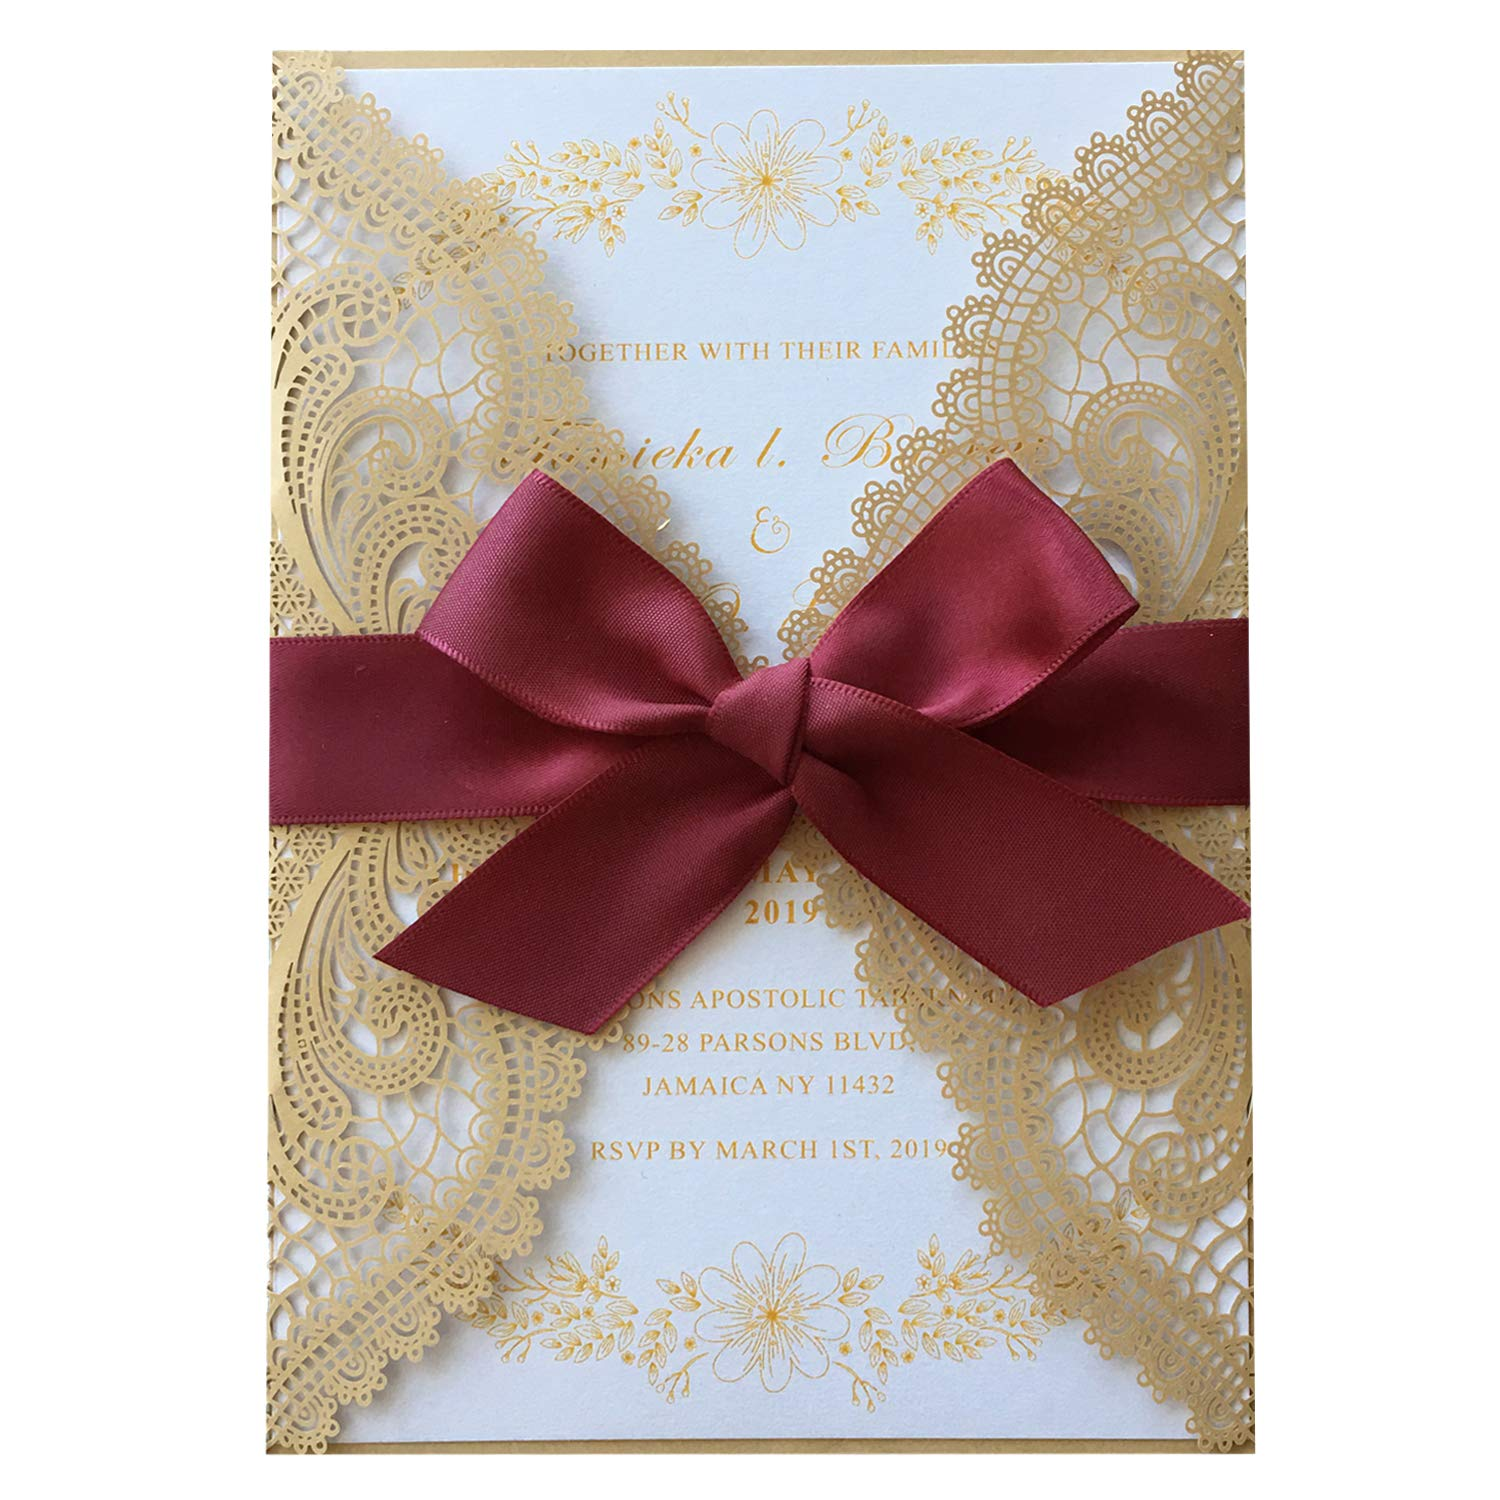 Picky Bride Golden Lace Wedding Invitations with Burgundy Ribbon Bow 5 x 7'' Envelopes Included - Set of 50 pcs (Blank Invitations)